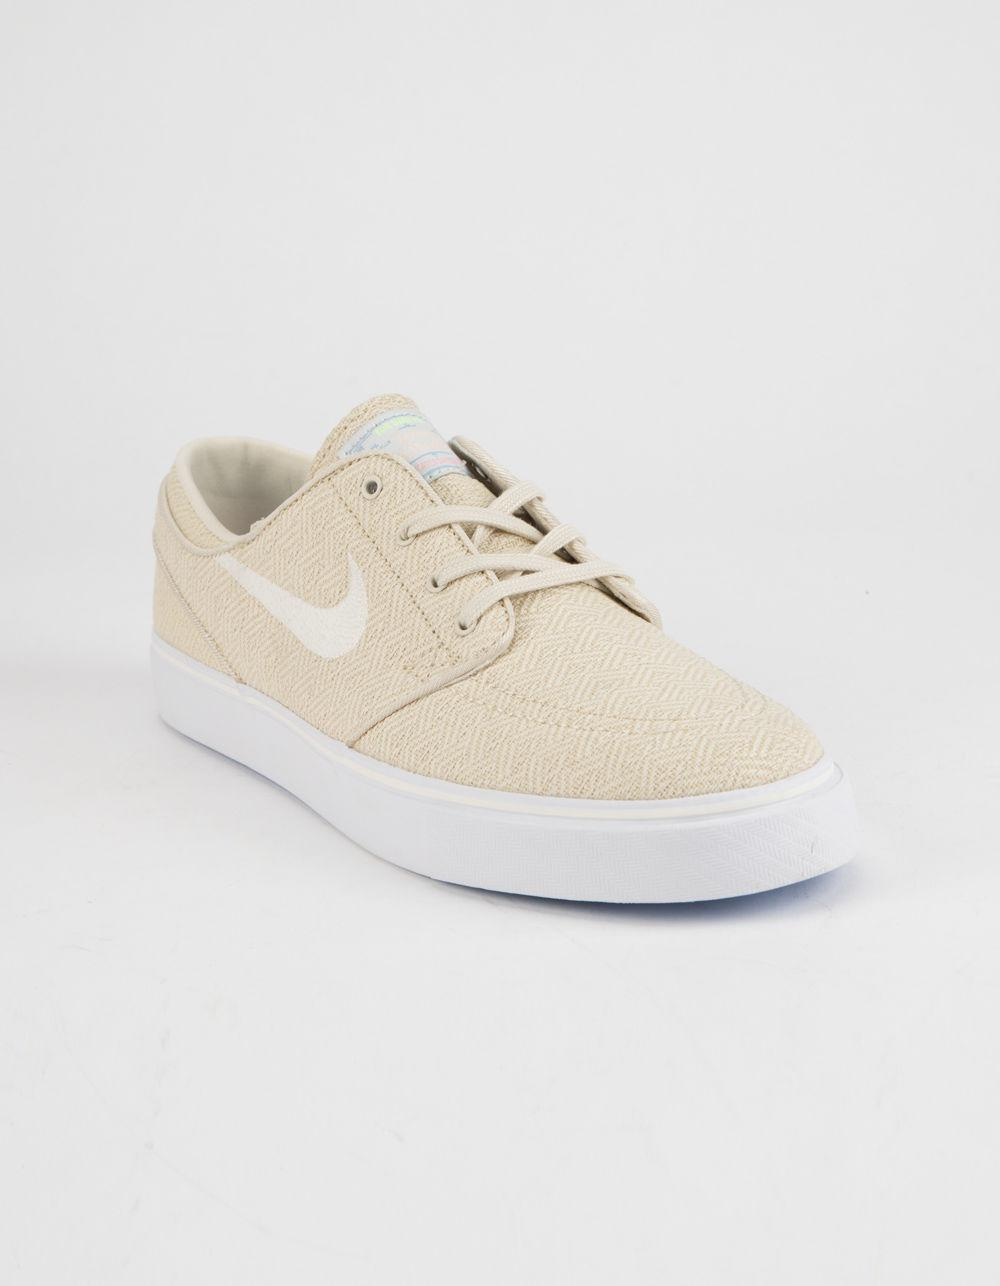 1923e48f6e4a8 Lyst - Nike Zoom Stefan Janoski Canvas Fossil   Sail White Mens Shoes in  White for Men